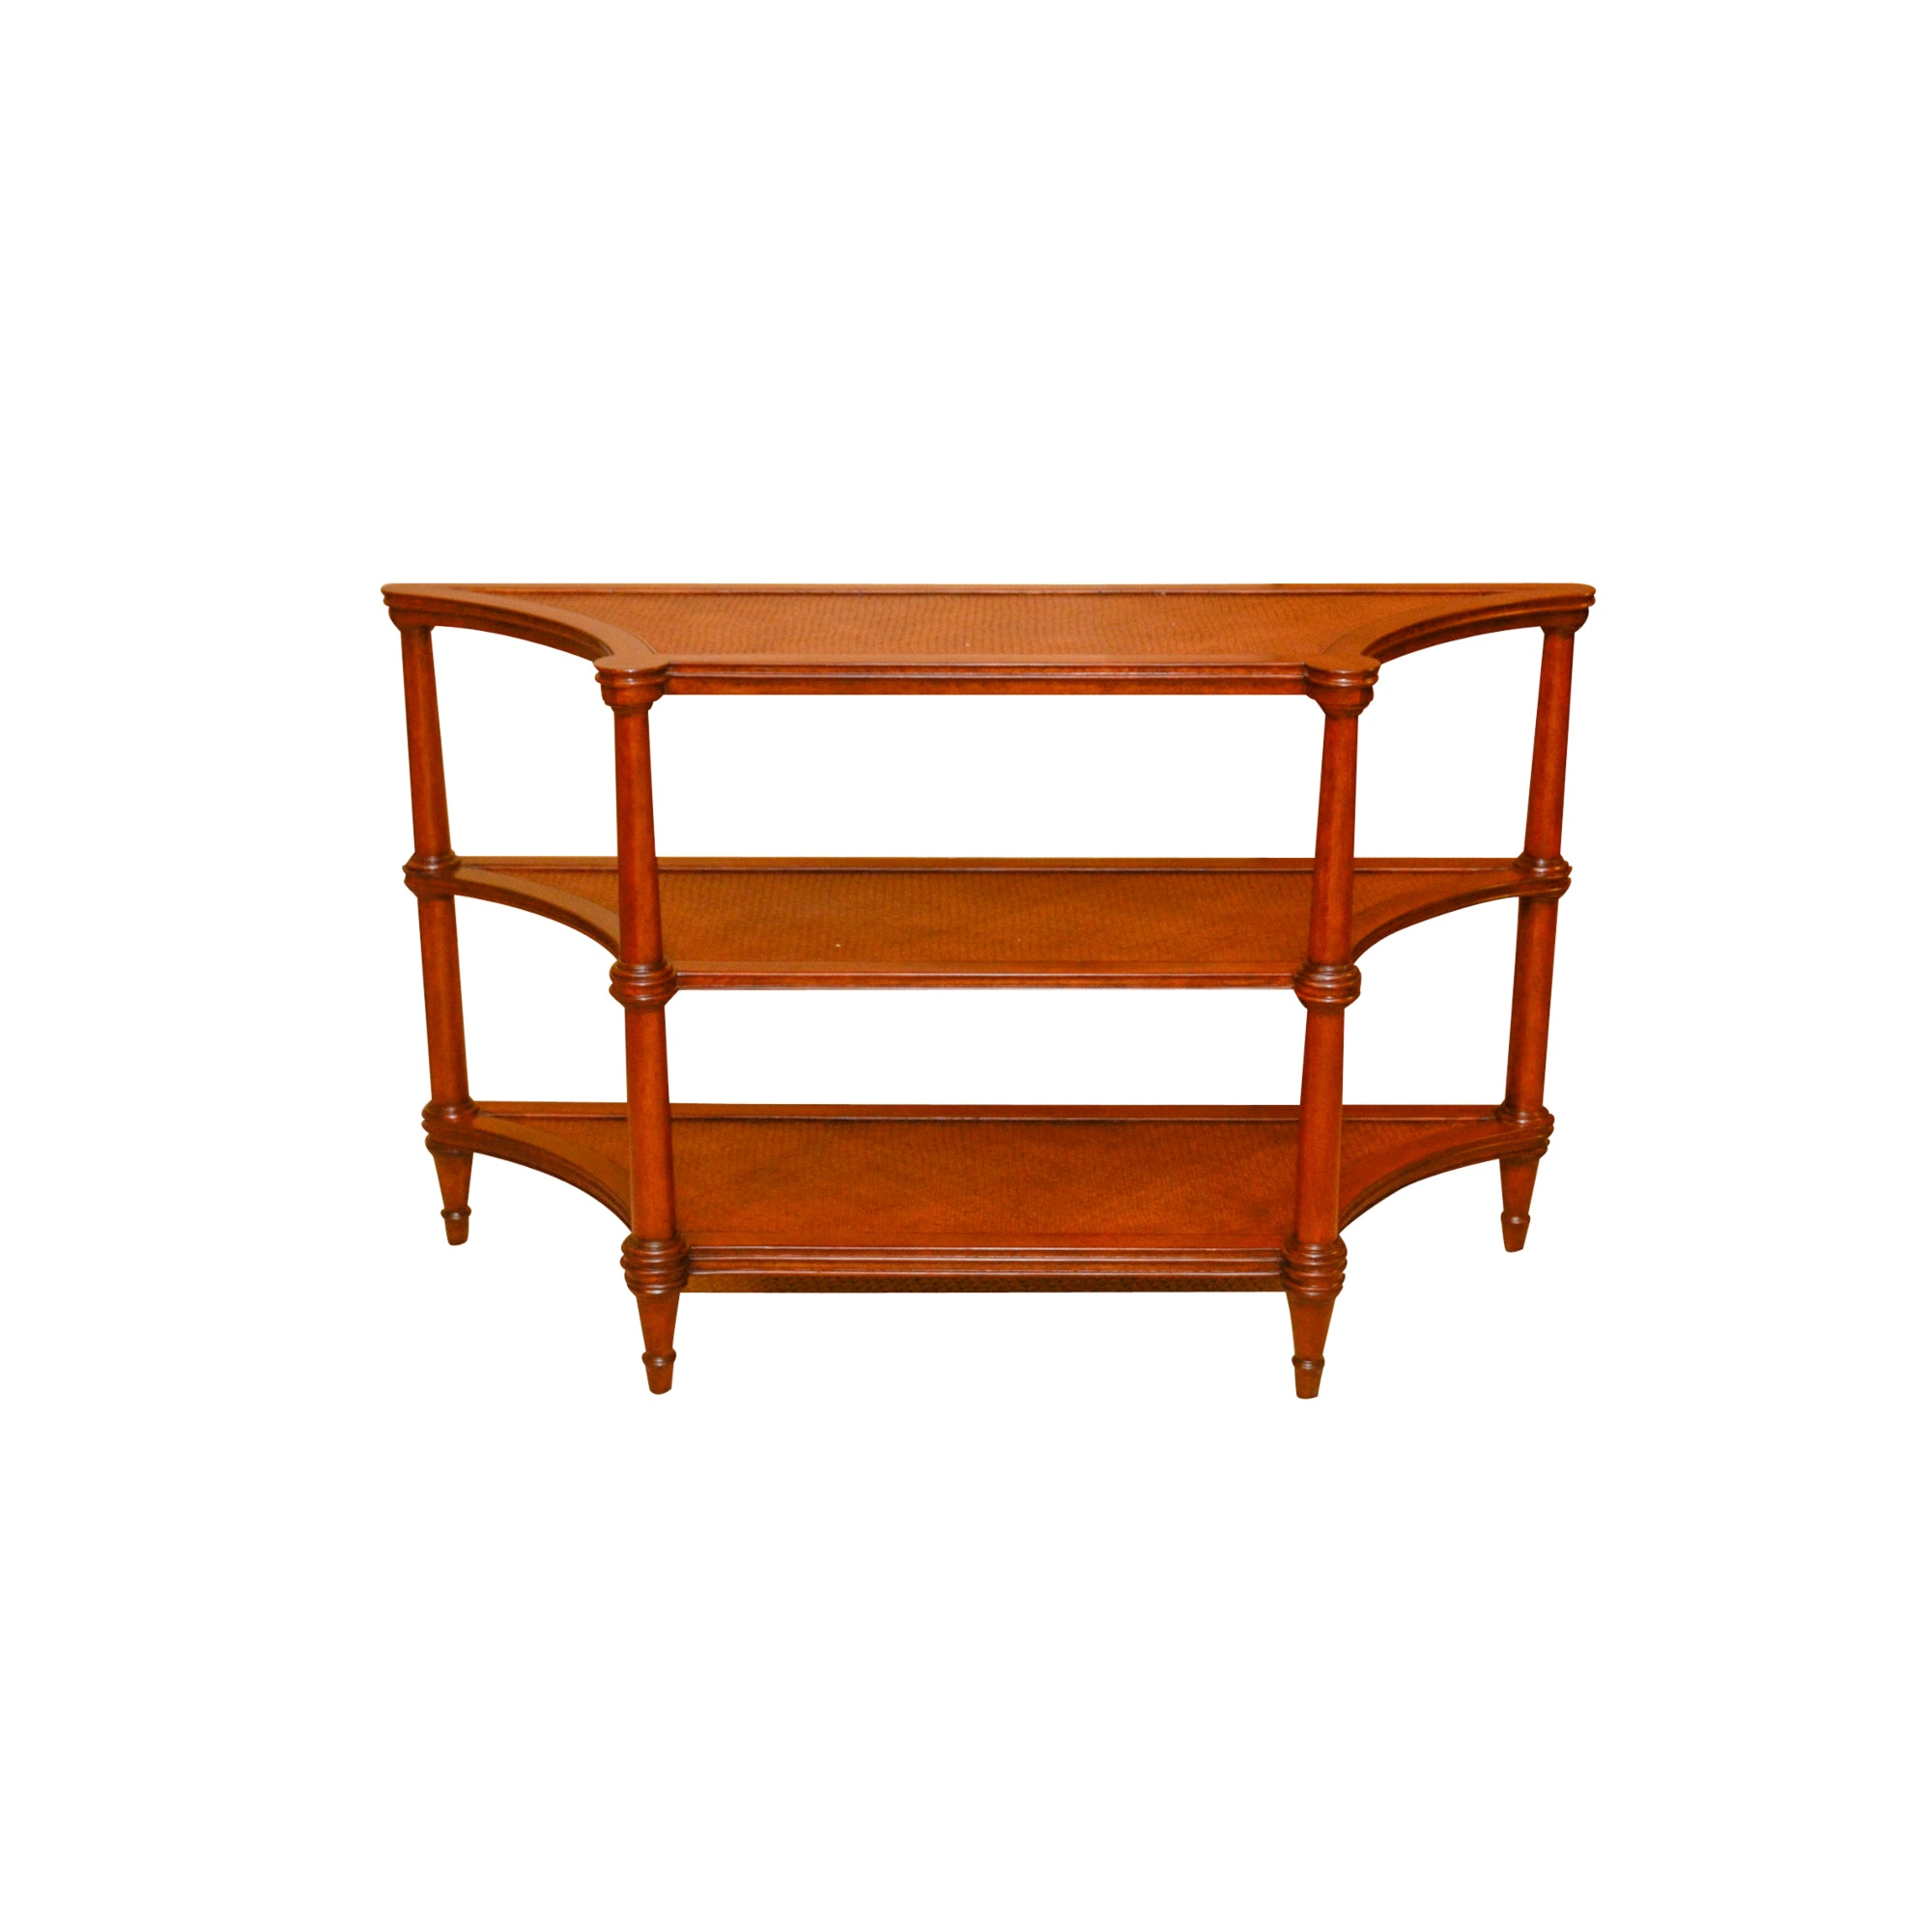 Vintage Three-Tier Console Table by Ethan Allen